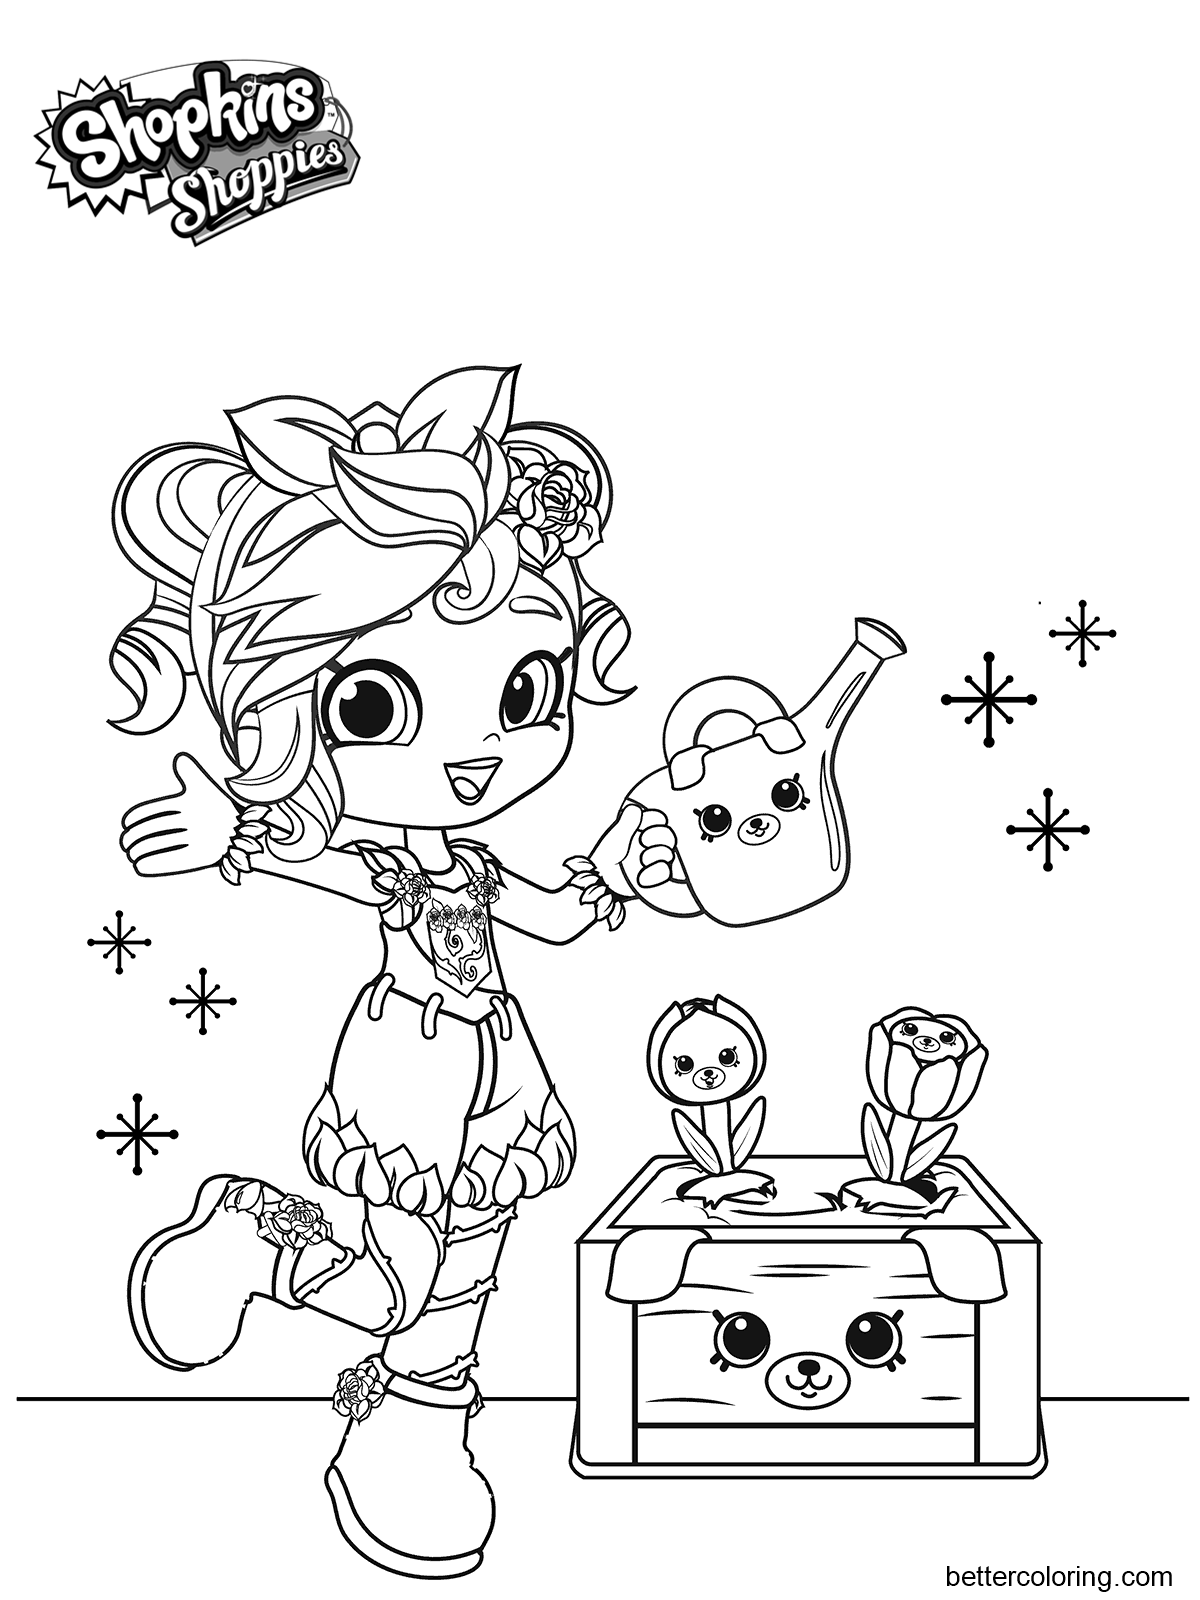 Girly Shoppies Coloring Pages Free Printable Coloring Pages